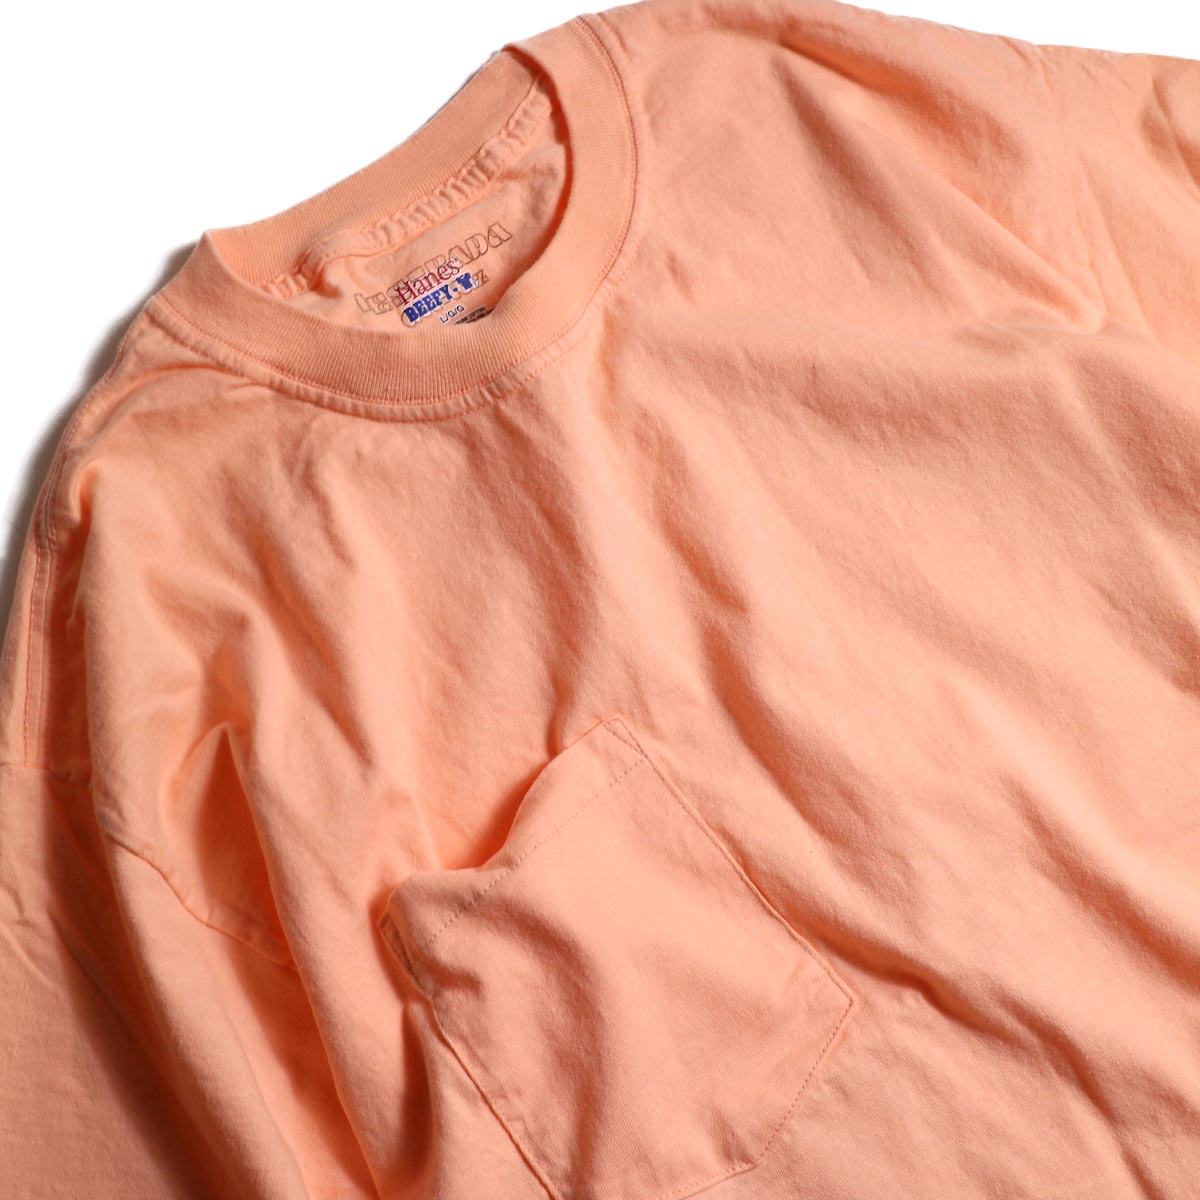 HESTRADA GEE-WIZ / SWITCH S/S Tee (Candy Orange)首周り